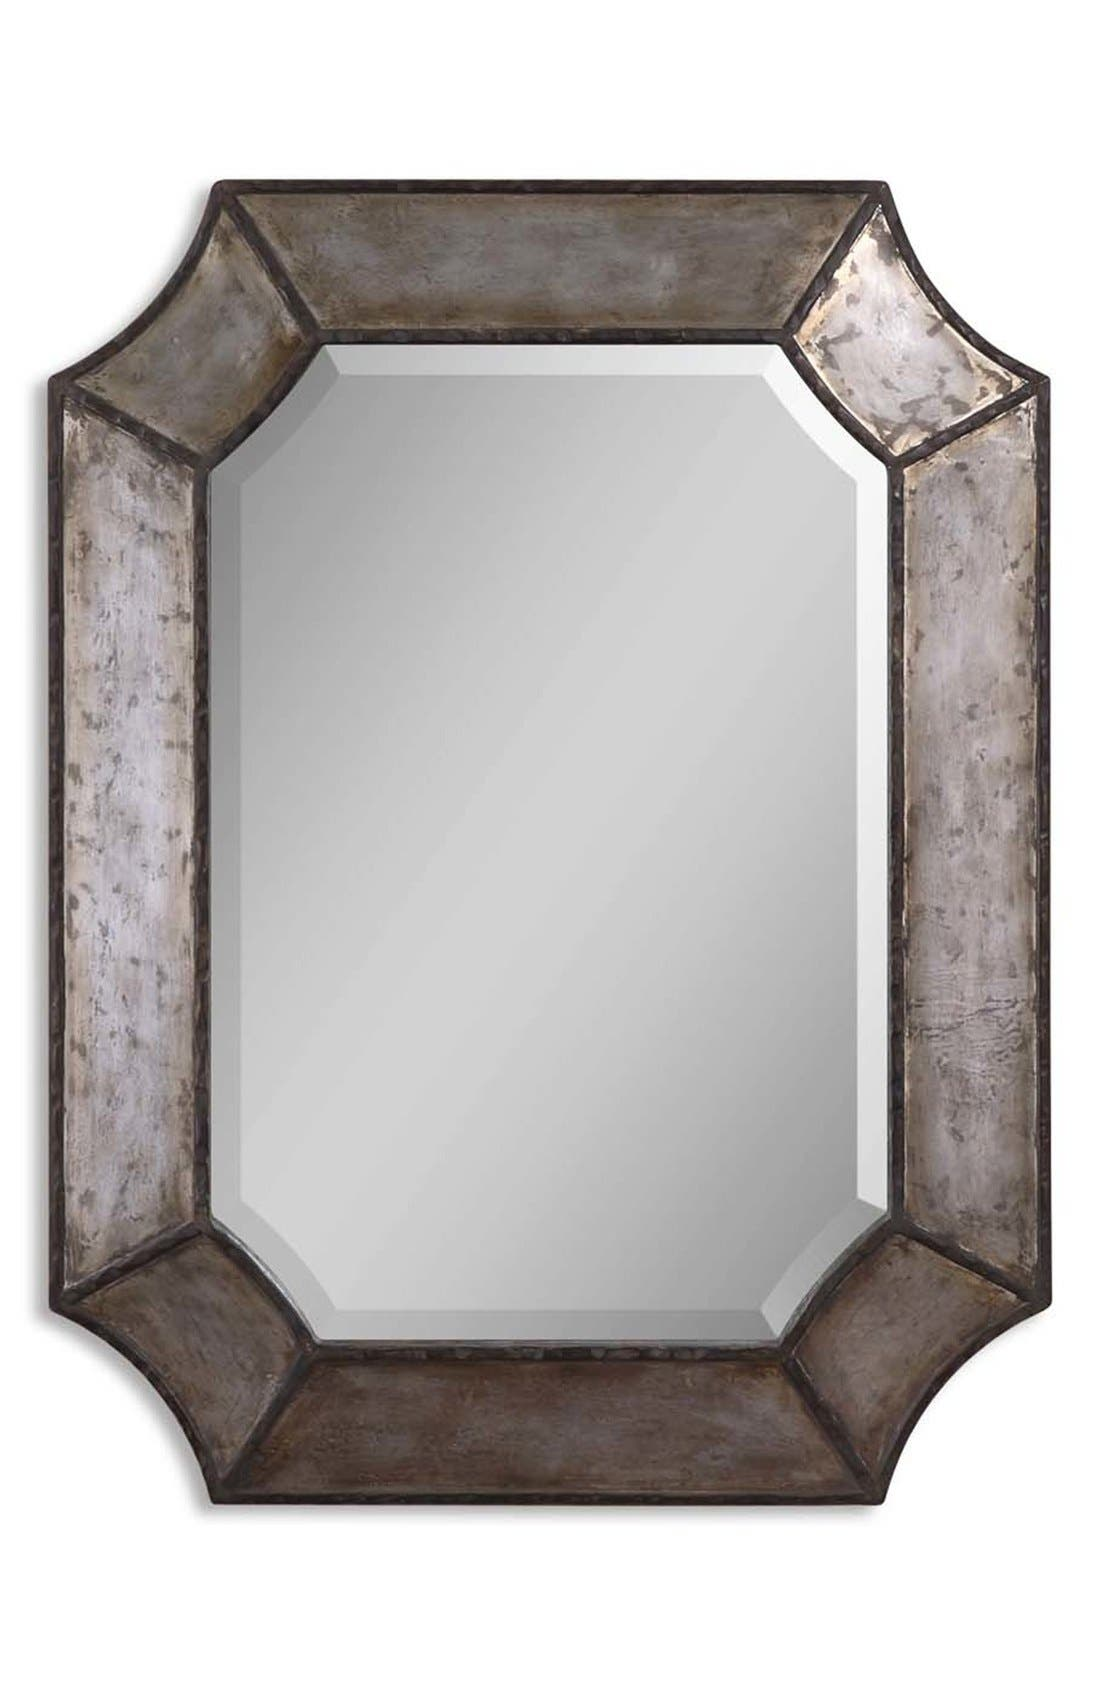 UTTERMOST 'Elliot' Distressed Mirror